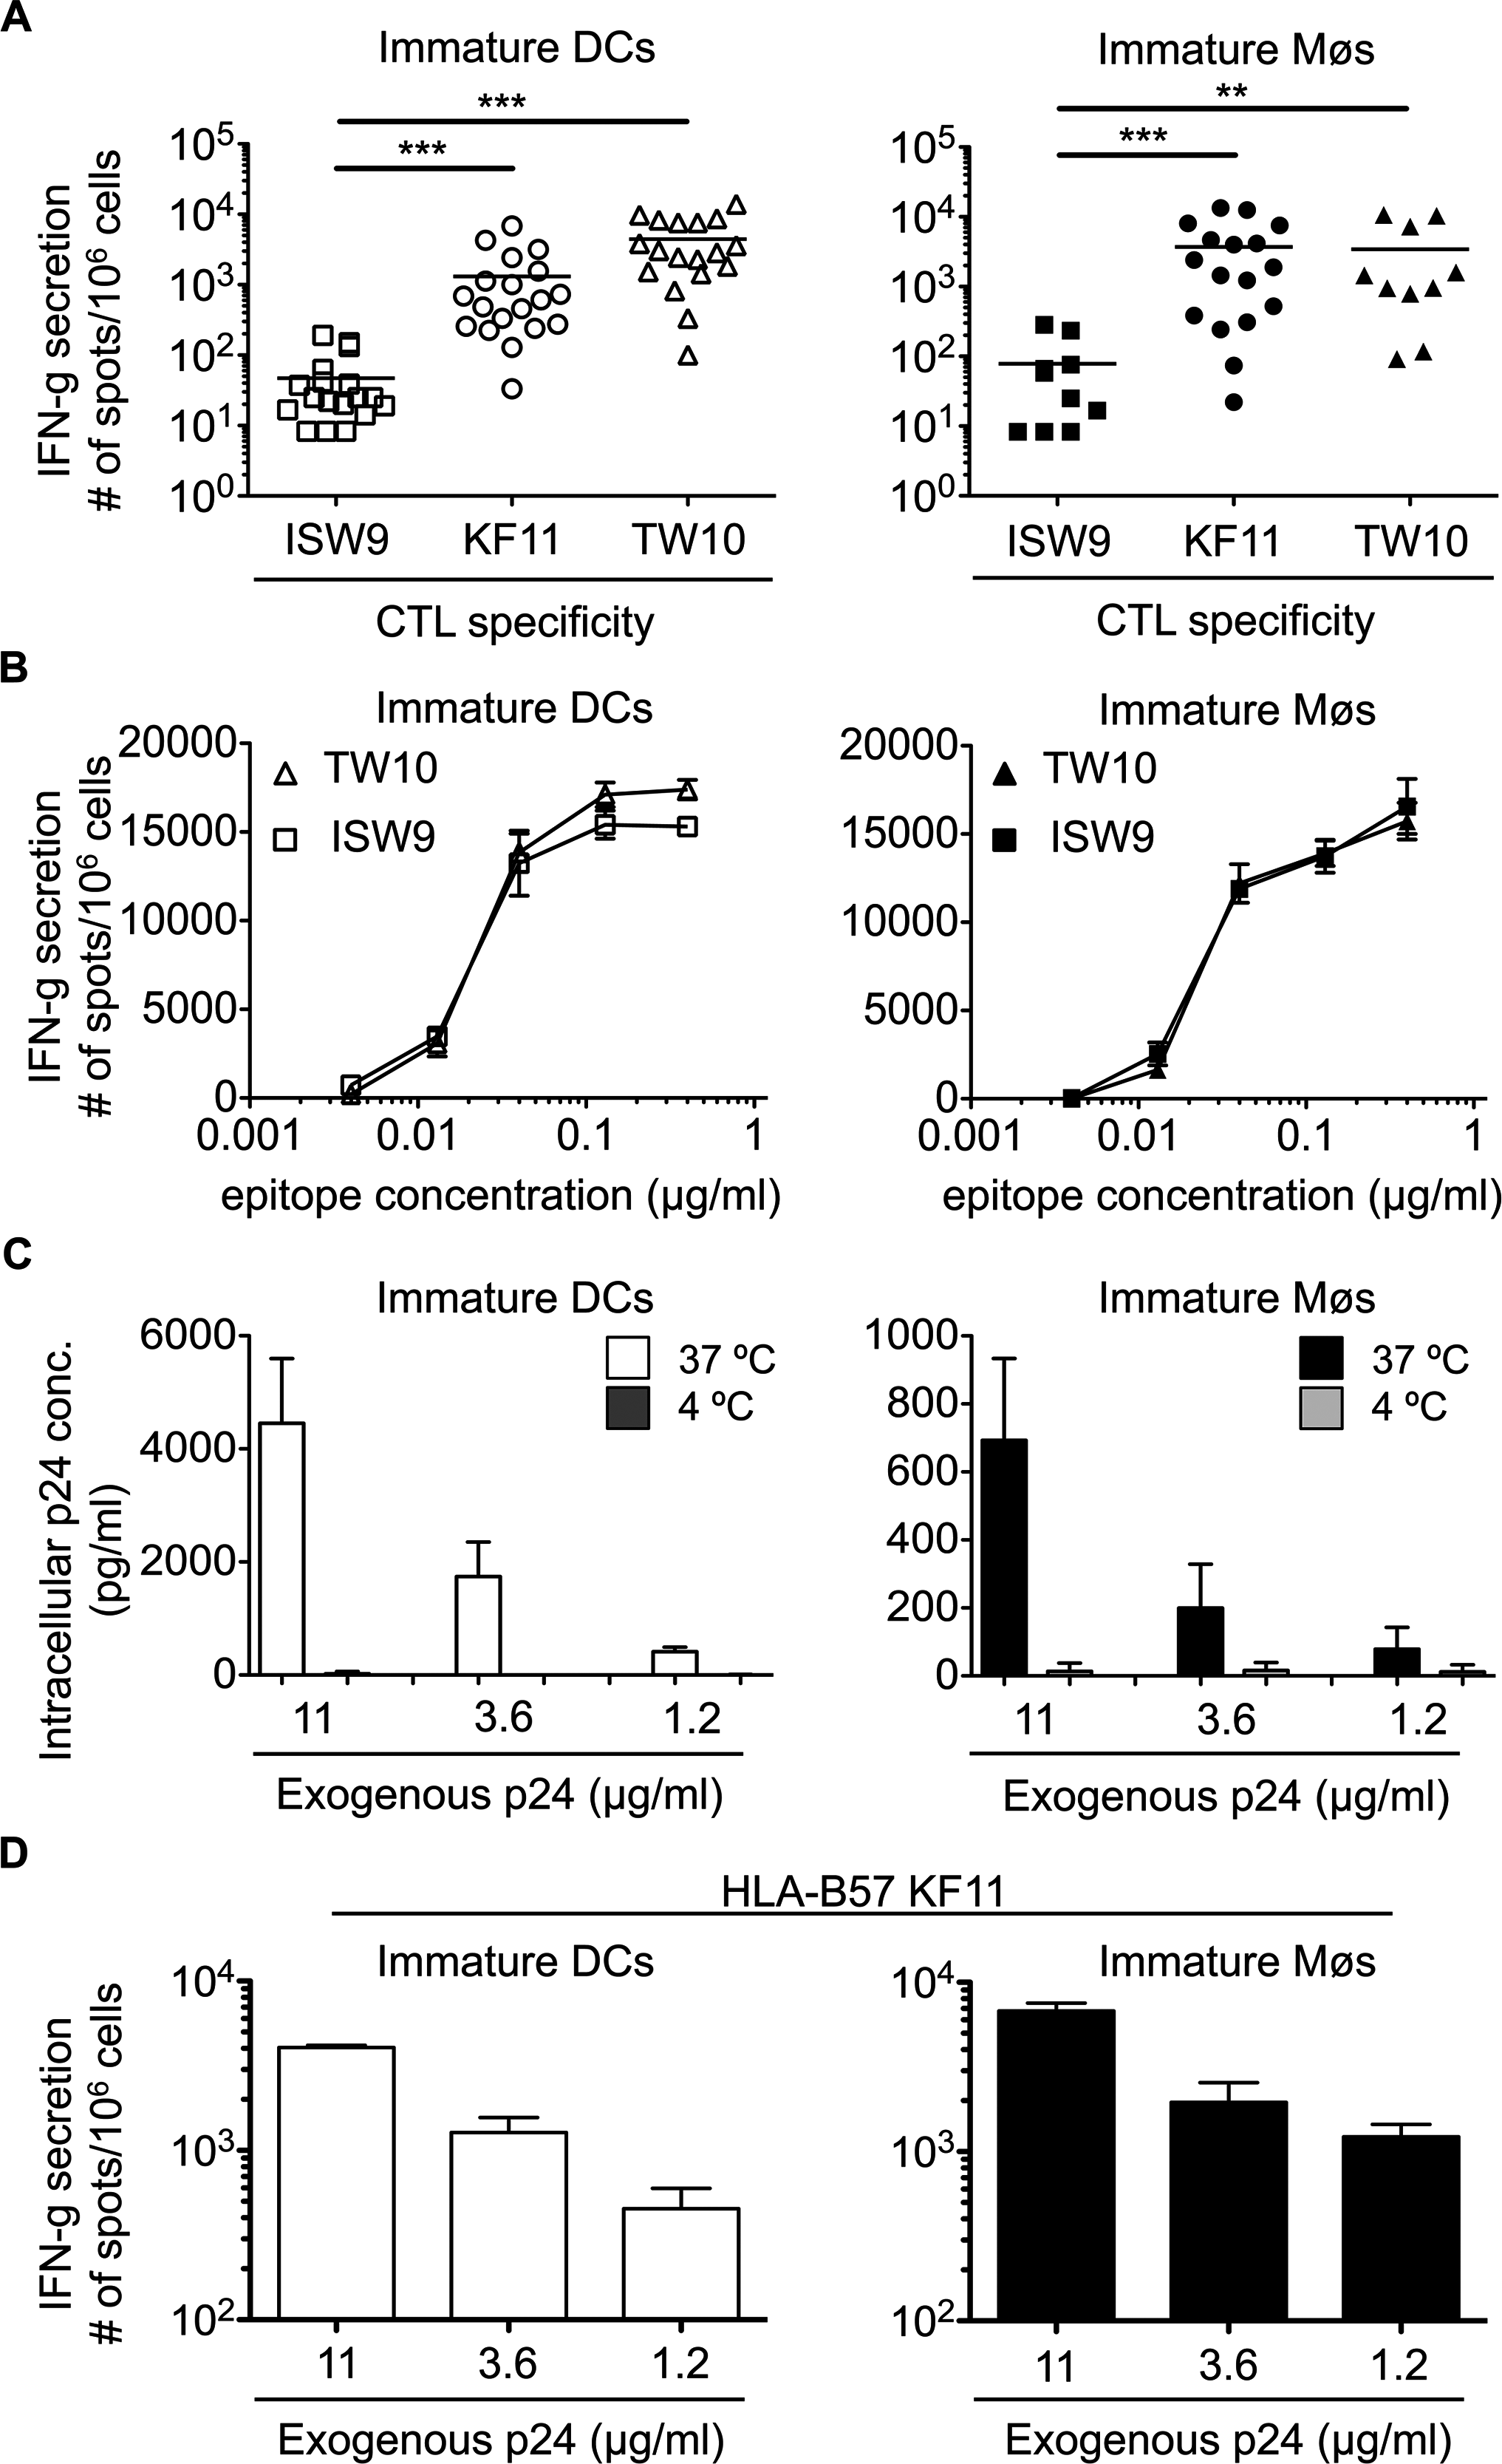 The immunodominant HLA-B57-restricted TW10 and KF11 epitopes are more efficiently cross-presented than subdominant ISW9 epitope.